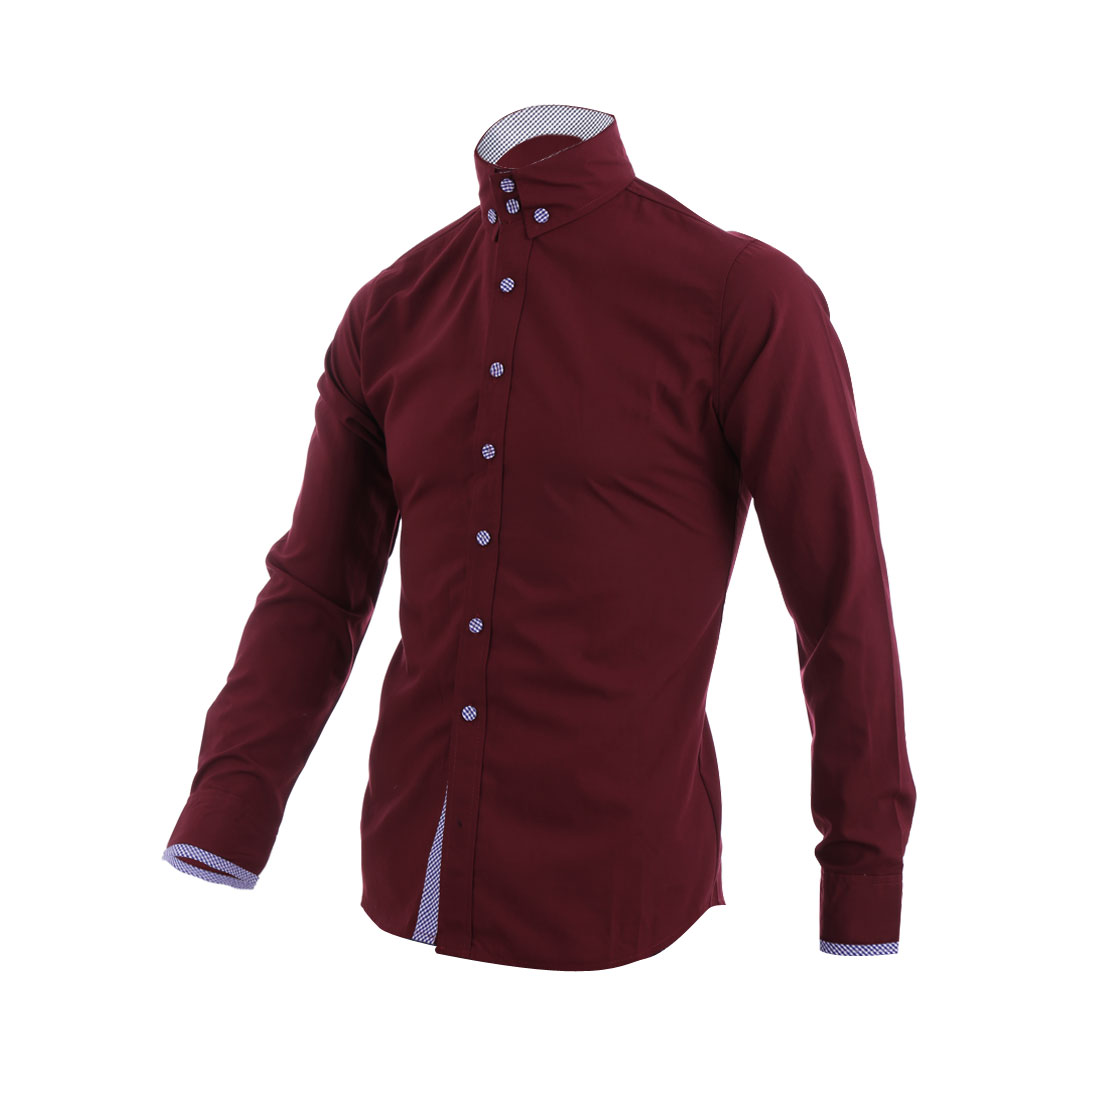 Men Single Breasted Plaids Decor Collar Shirt Burgundy M